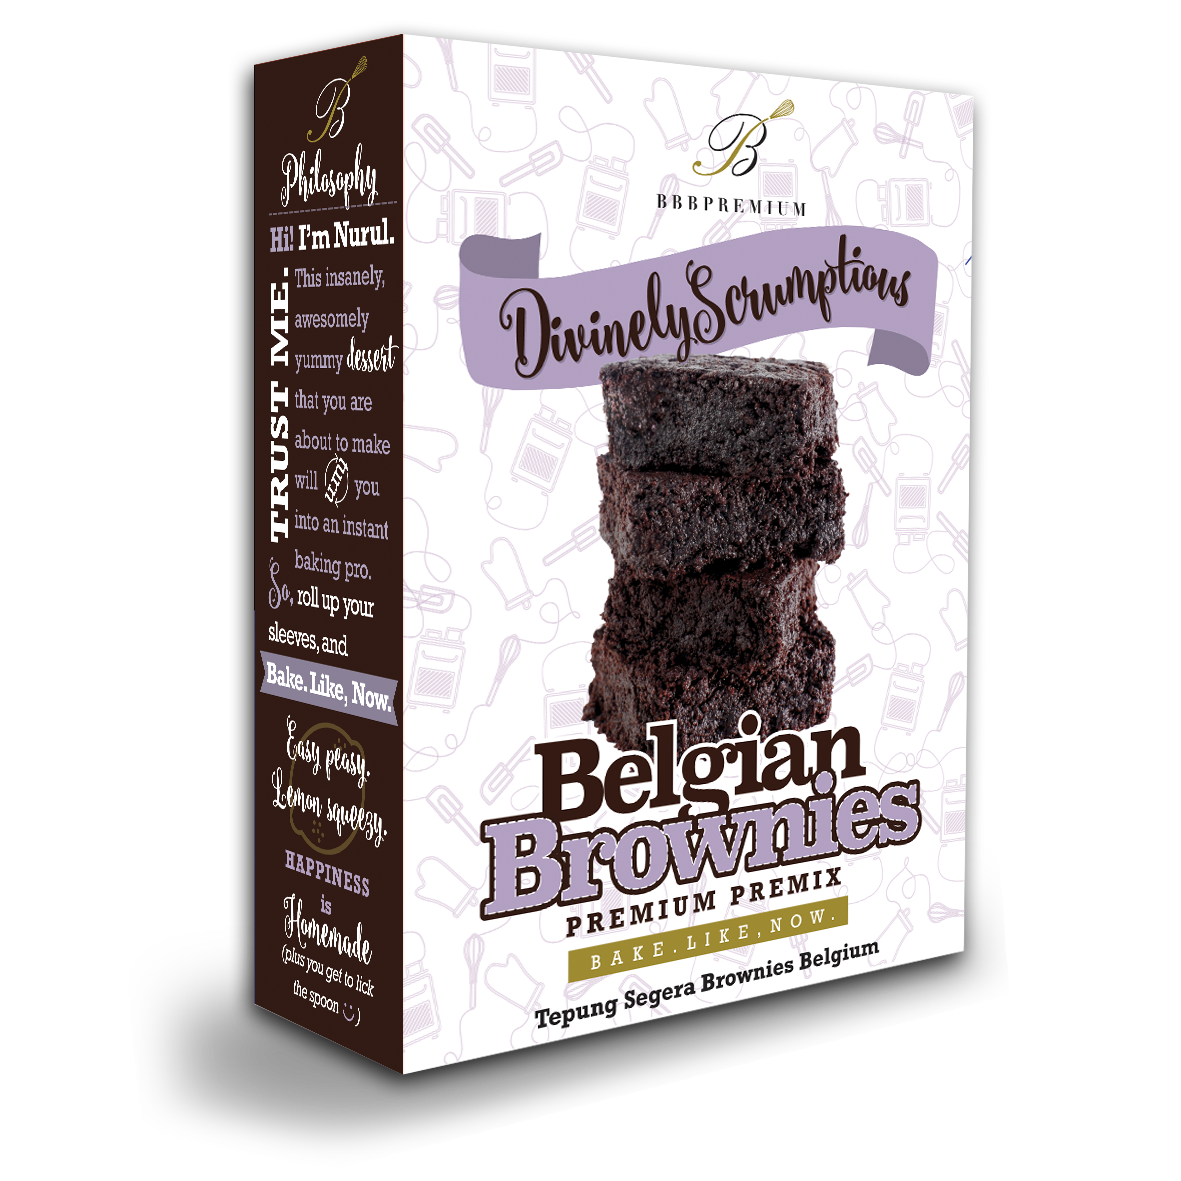 bbb box belgian with shadow 24032017.png